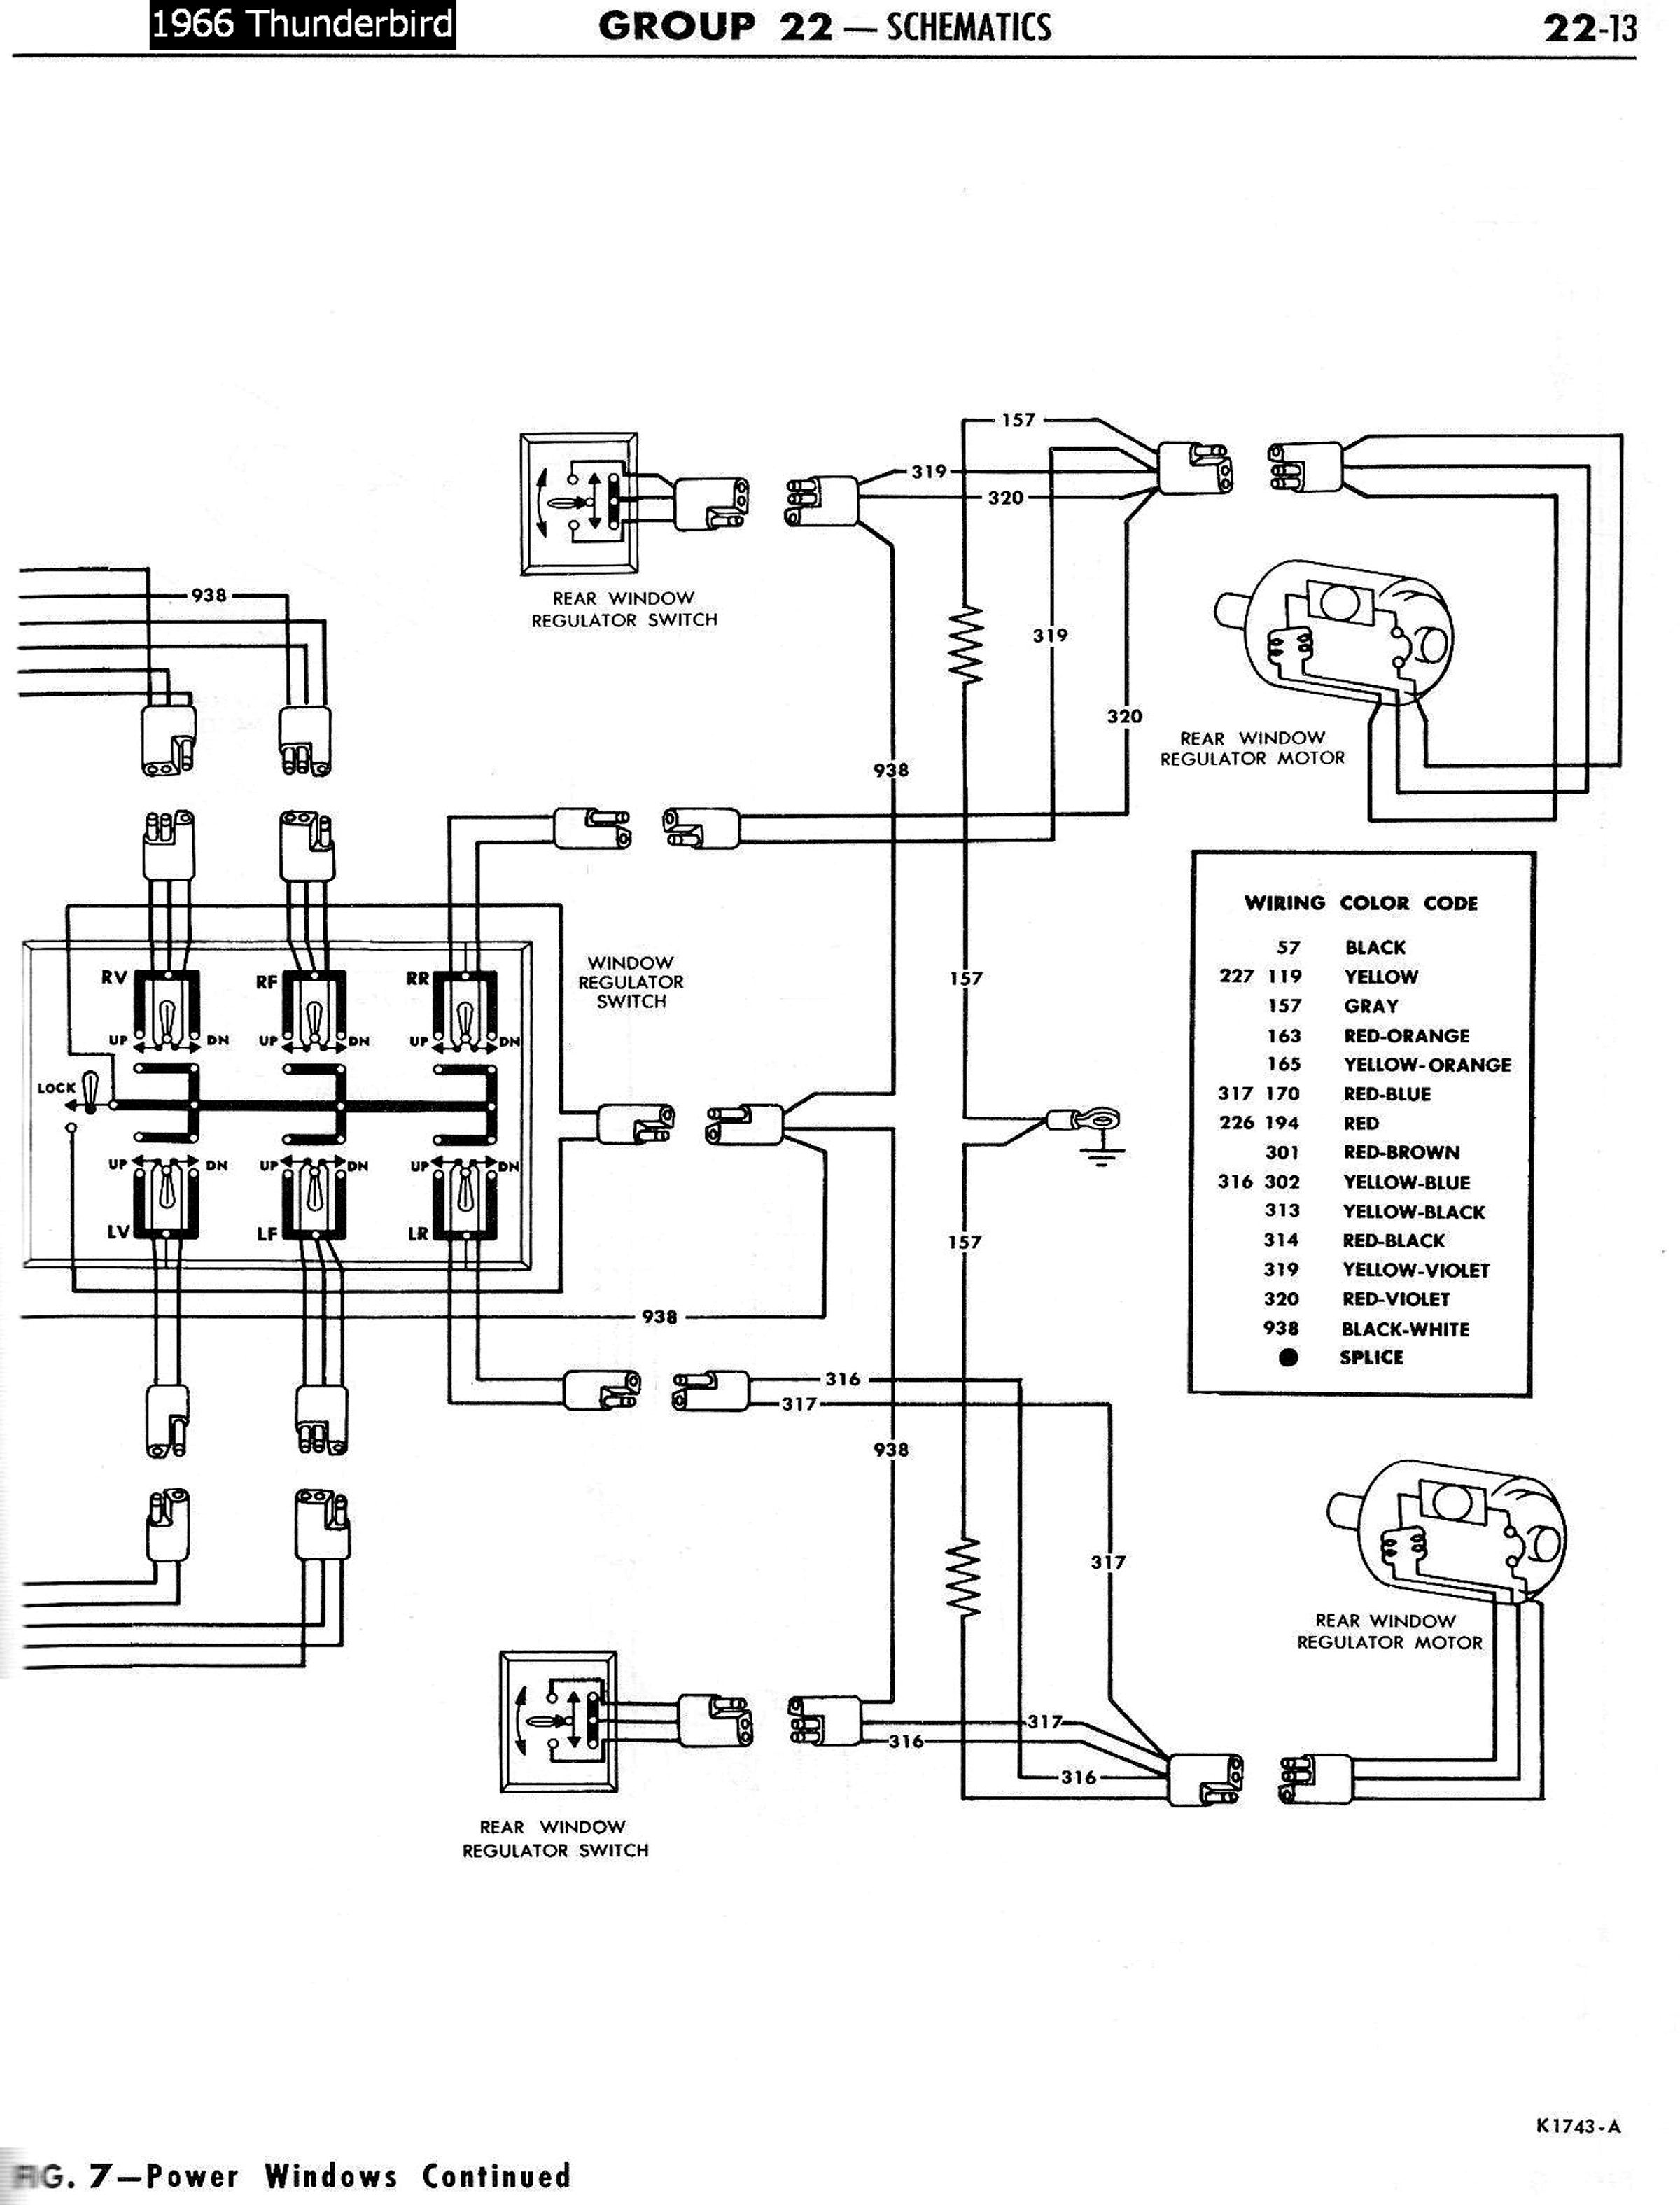 66TbirdPowerWindowsSchematicRight 1958 68 ford electrical schematics 1965 ford thunderbird wiring diagram at crackthecode.co